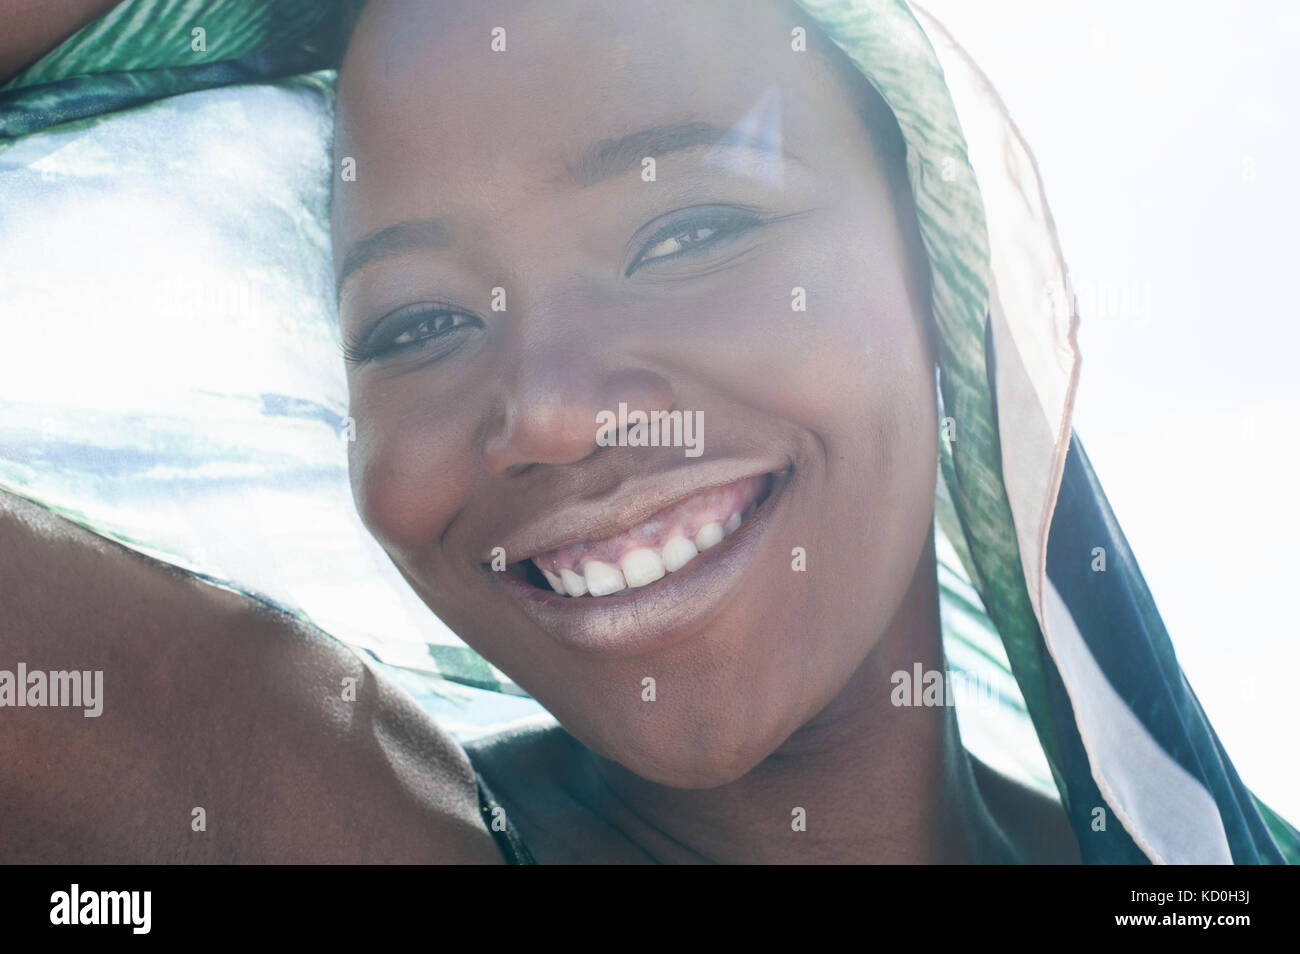 Portrait of young woman on beach, smiling, sheer scarf draped around her, close-up - Stock Image